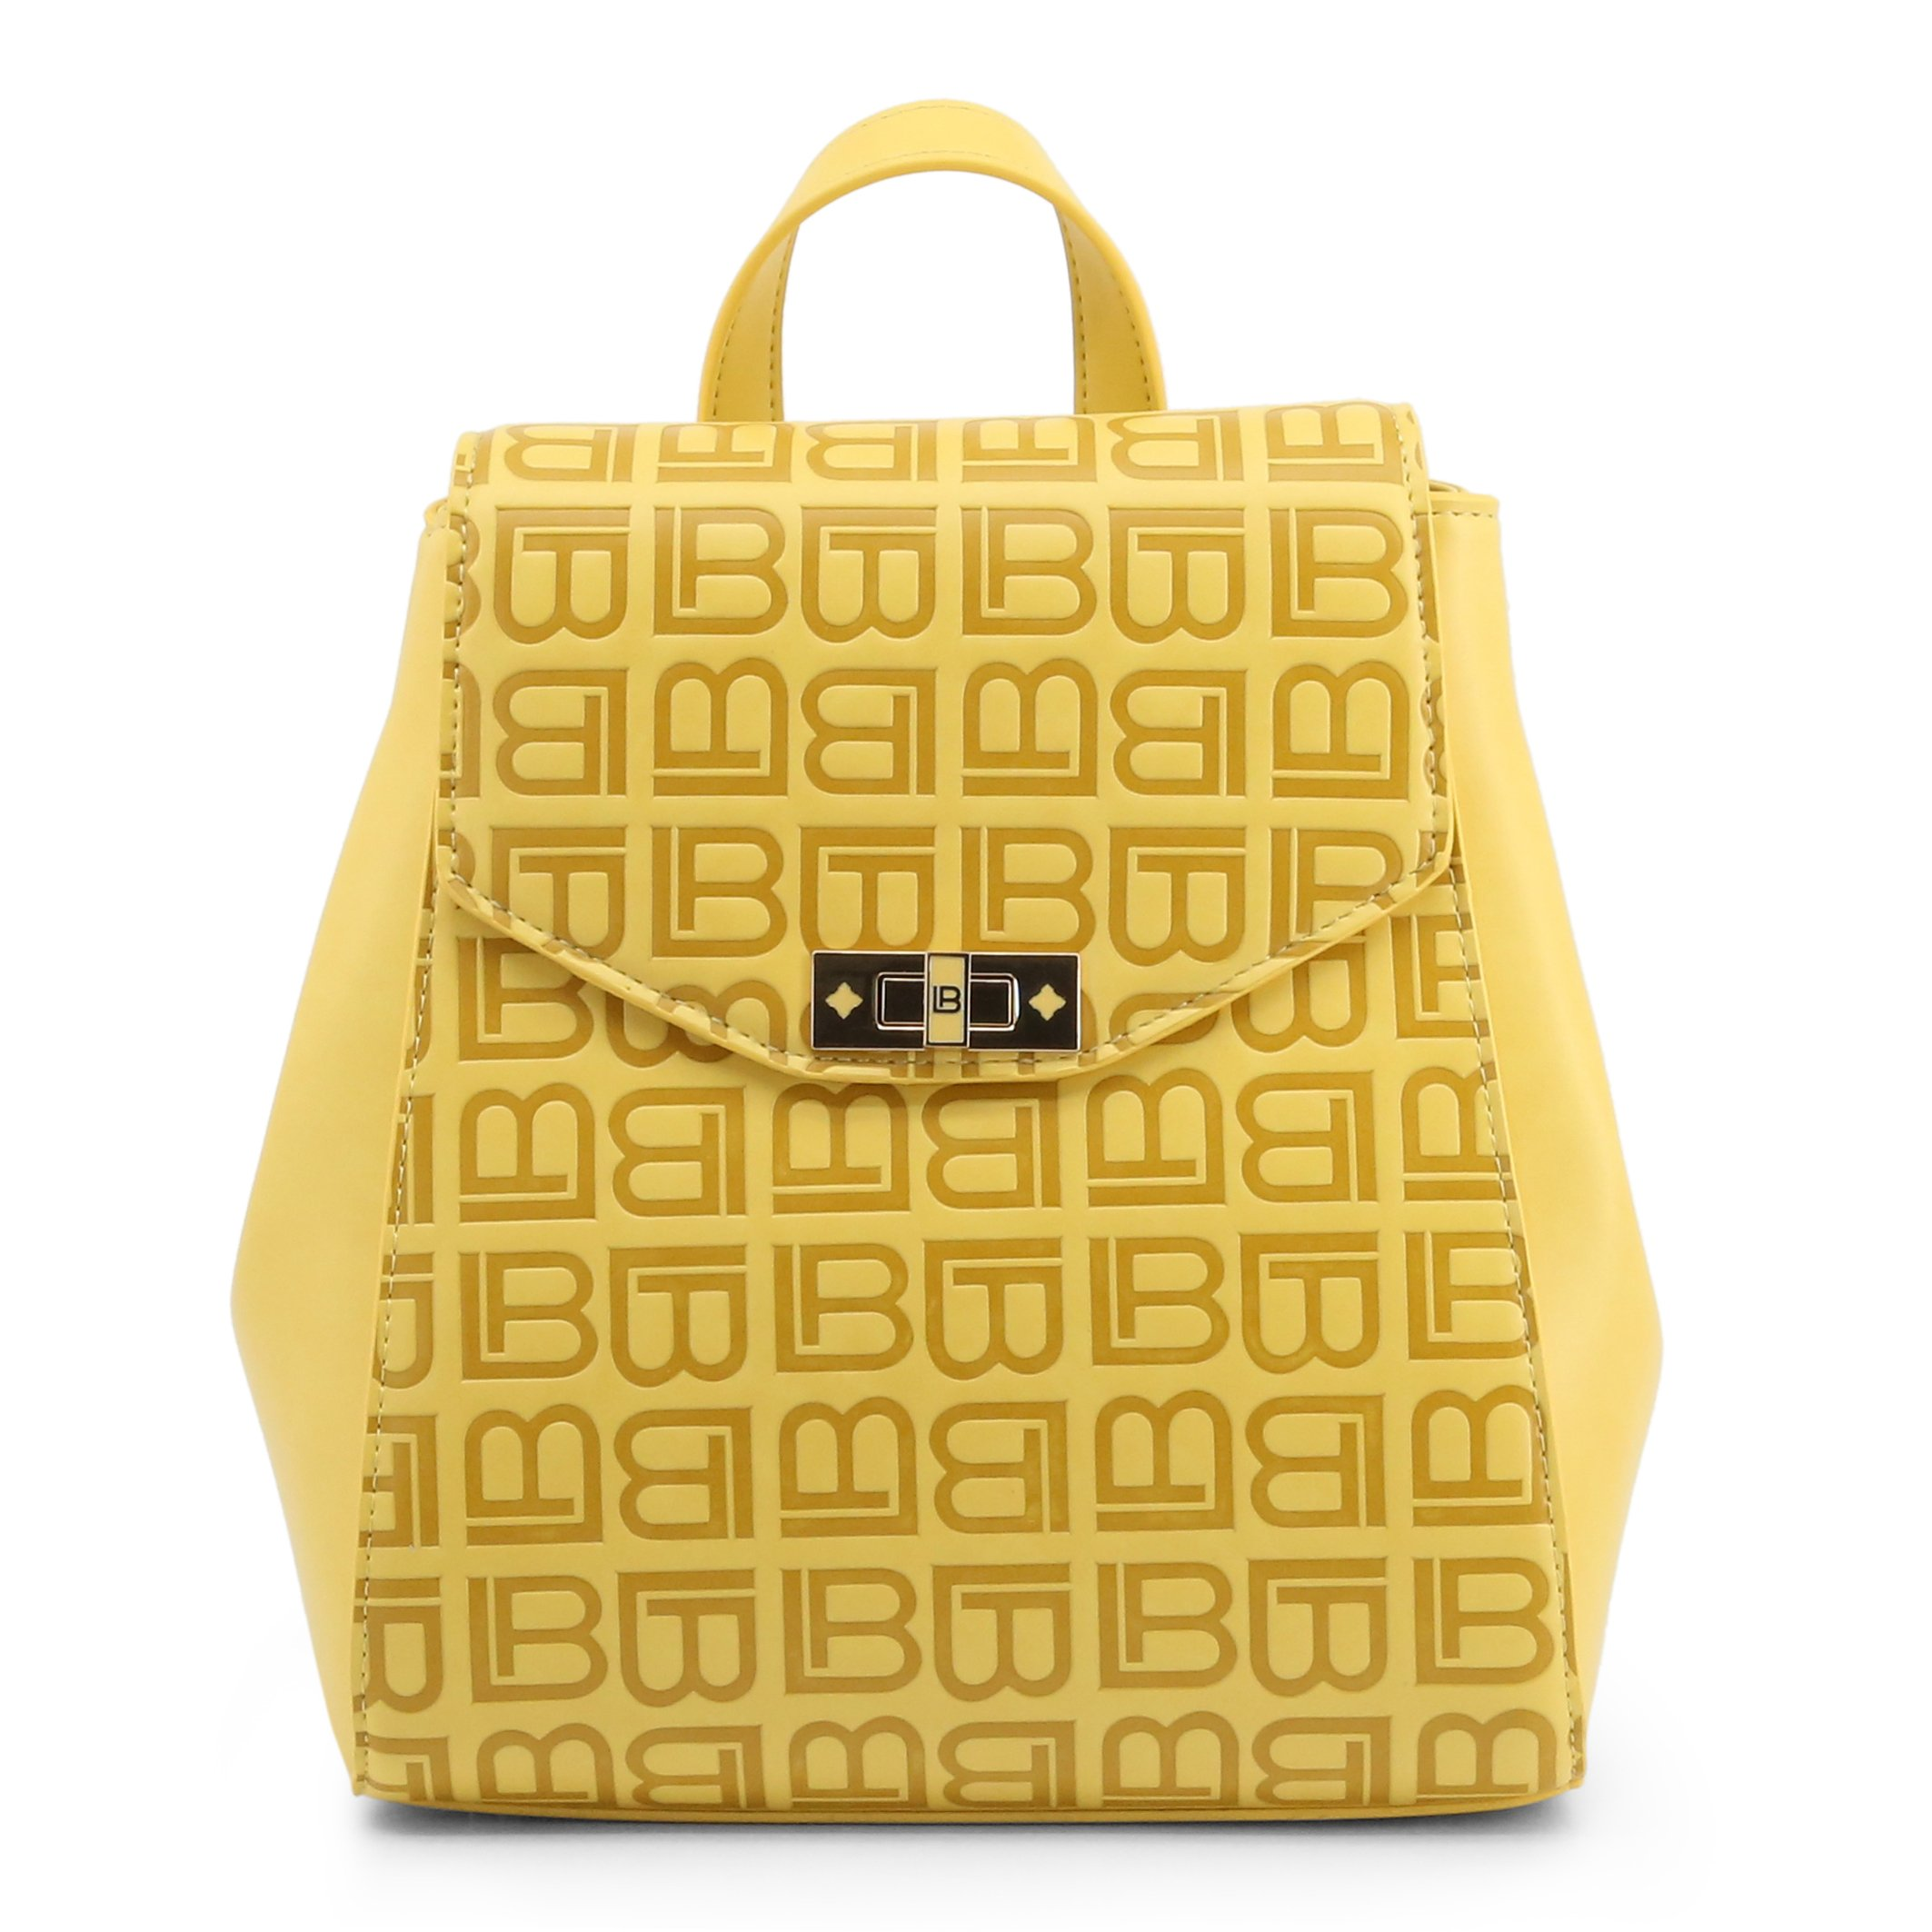 Laura Biagiotti Women's Backpack Various Colours Rossy_114-1 - yellow NOSIZE